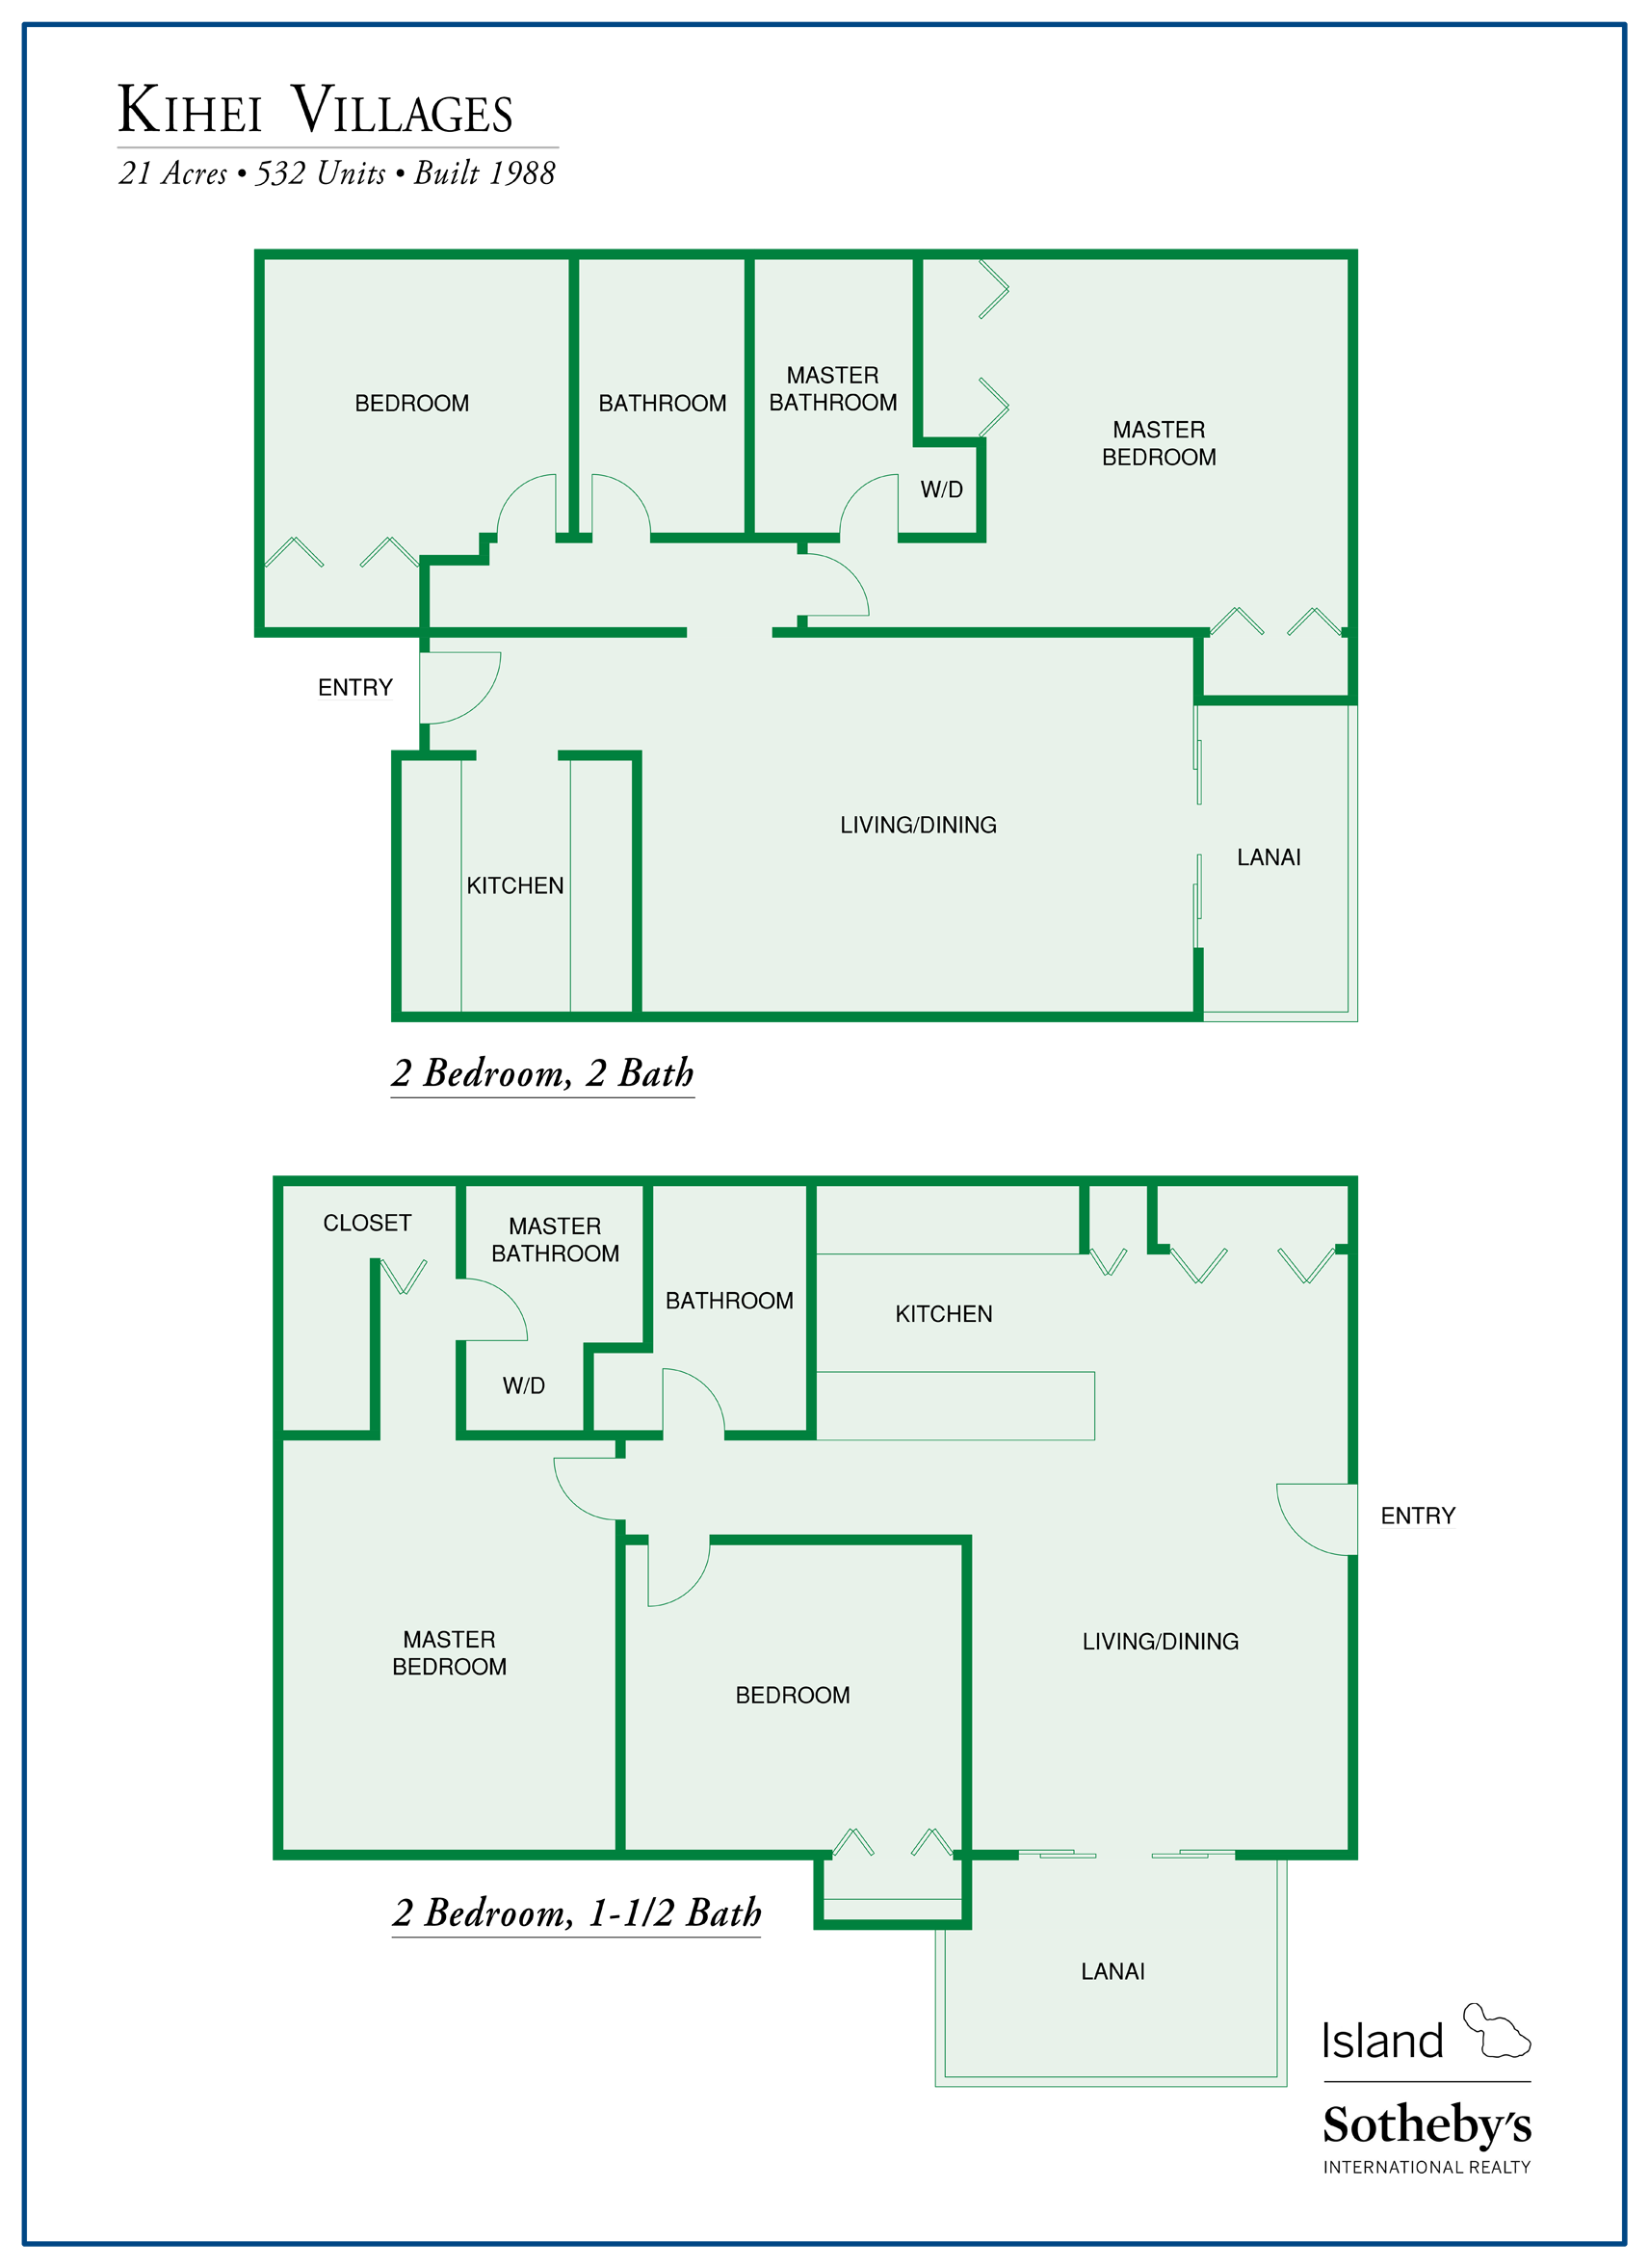 Kihei Villages Floor Plans Updated 2018